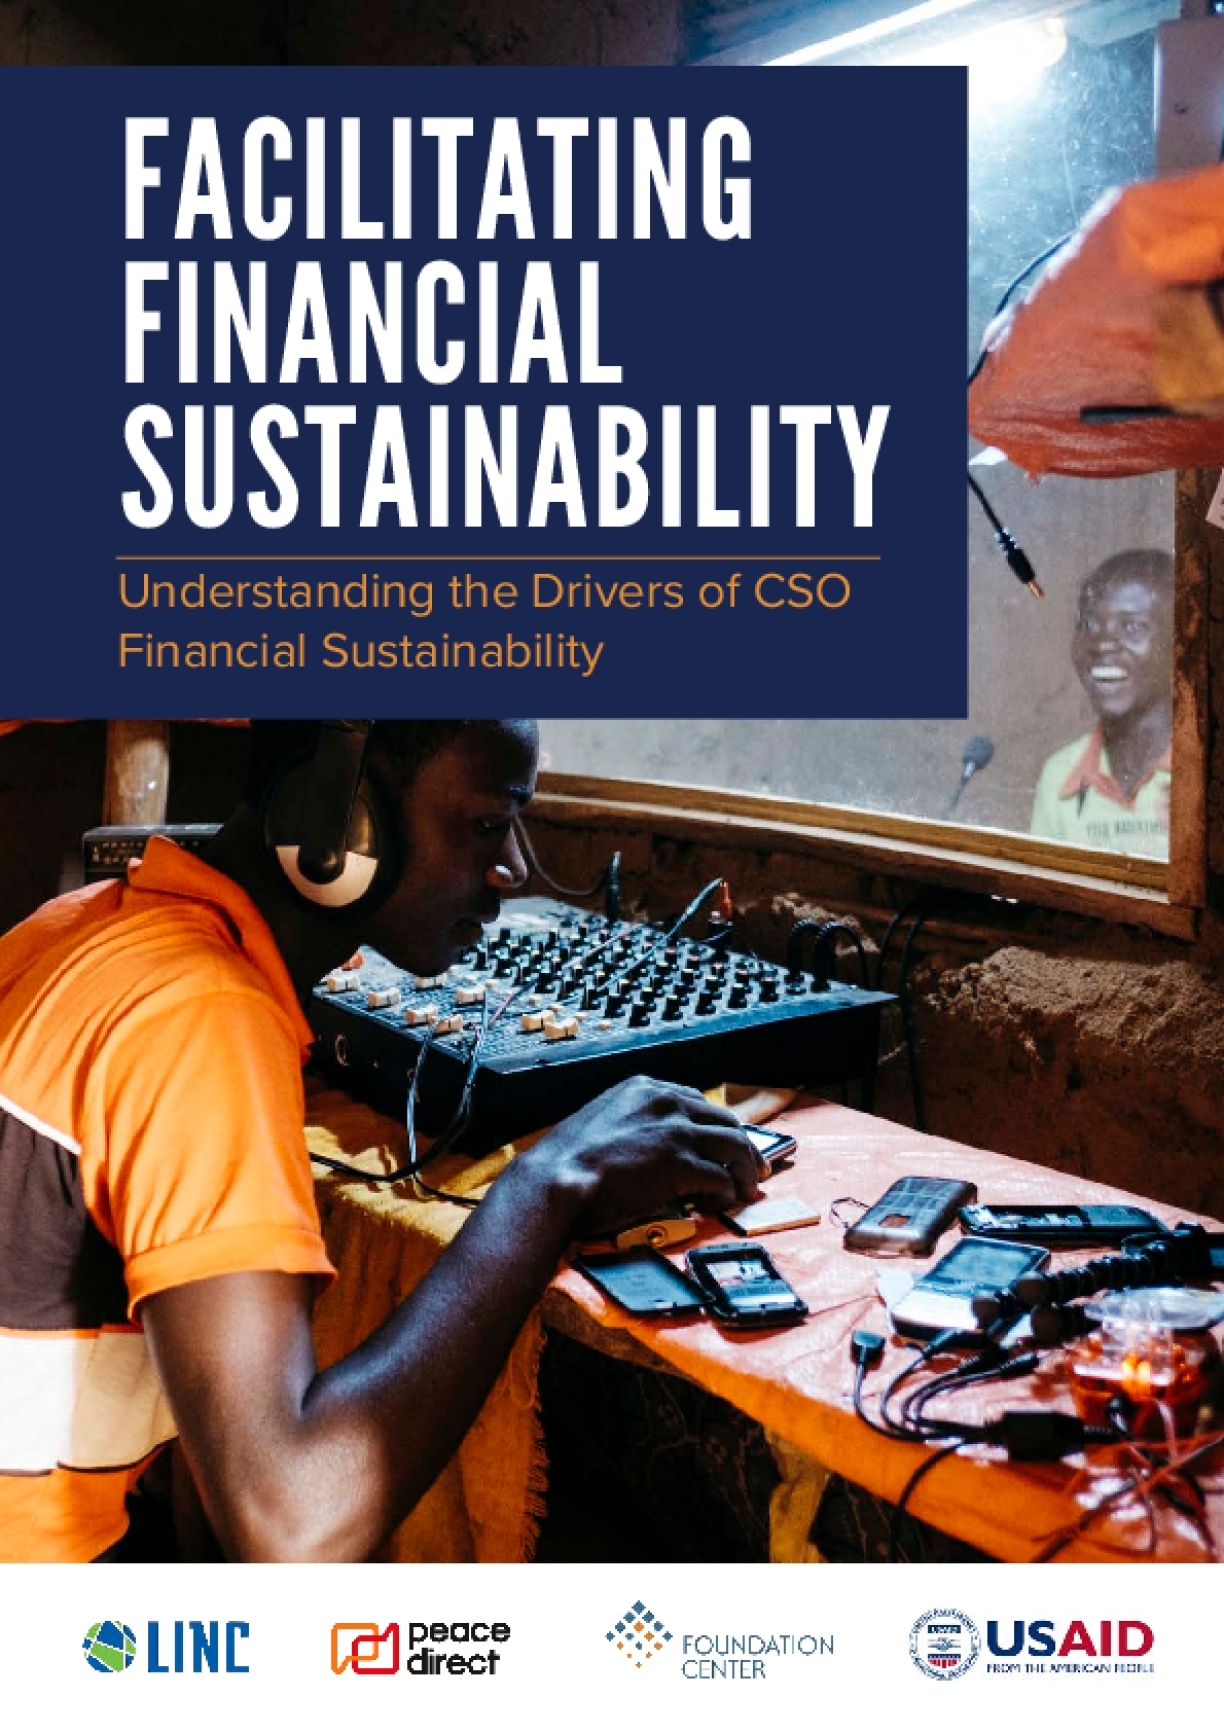 Facilitating Financial Sustainability: Understanding the Drivers of CSO Financial Sustainability